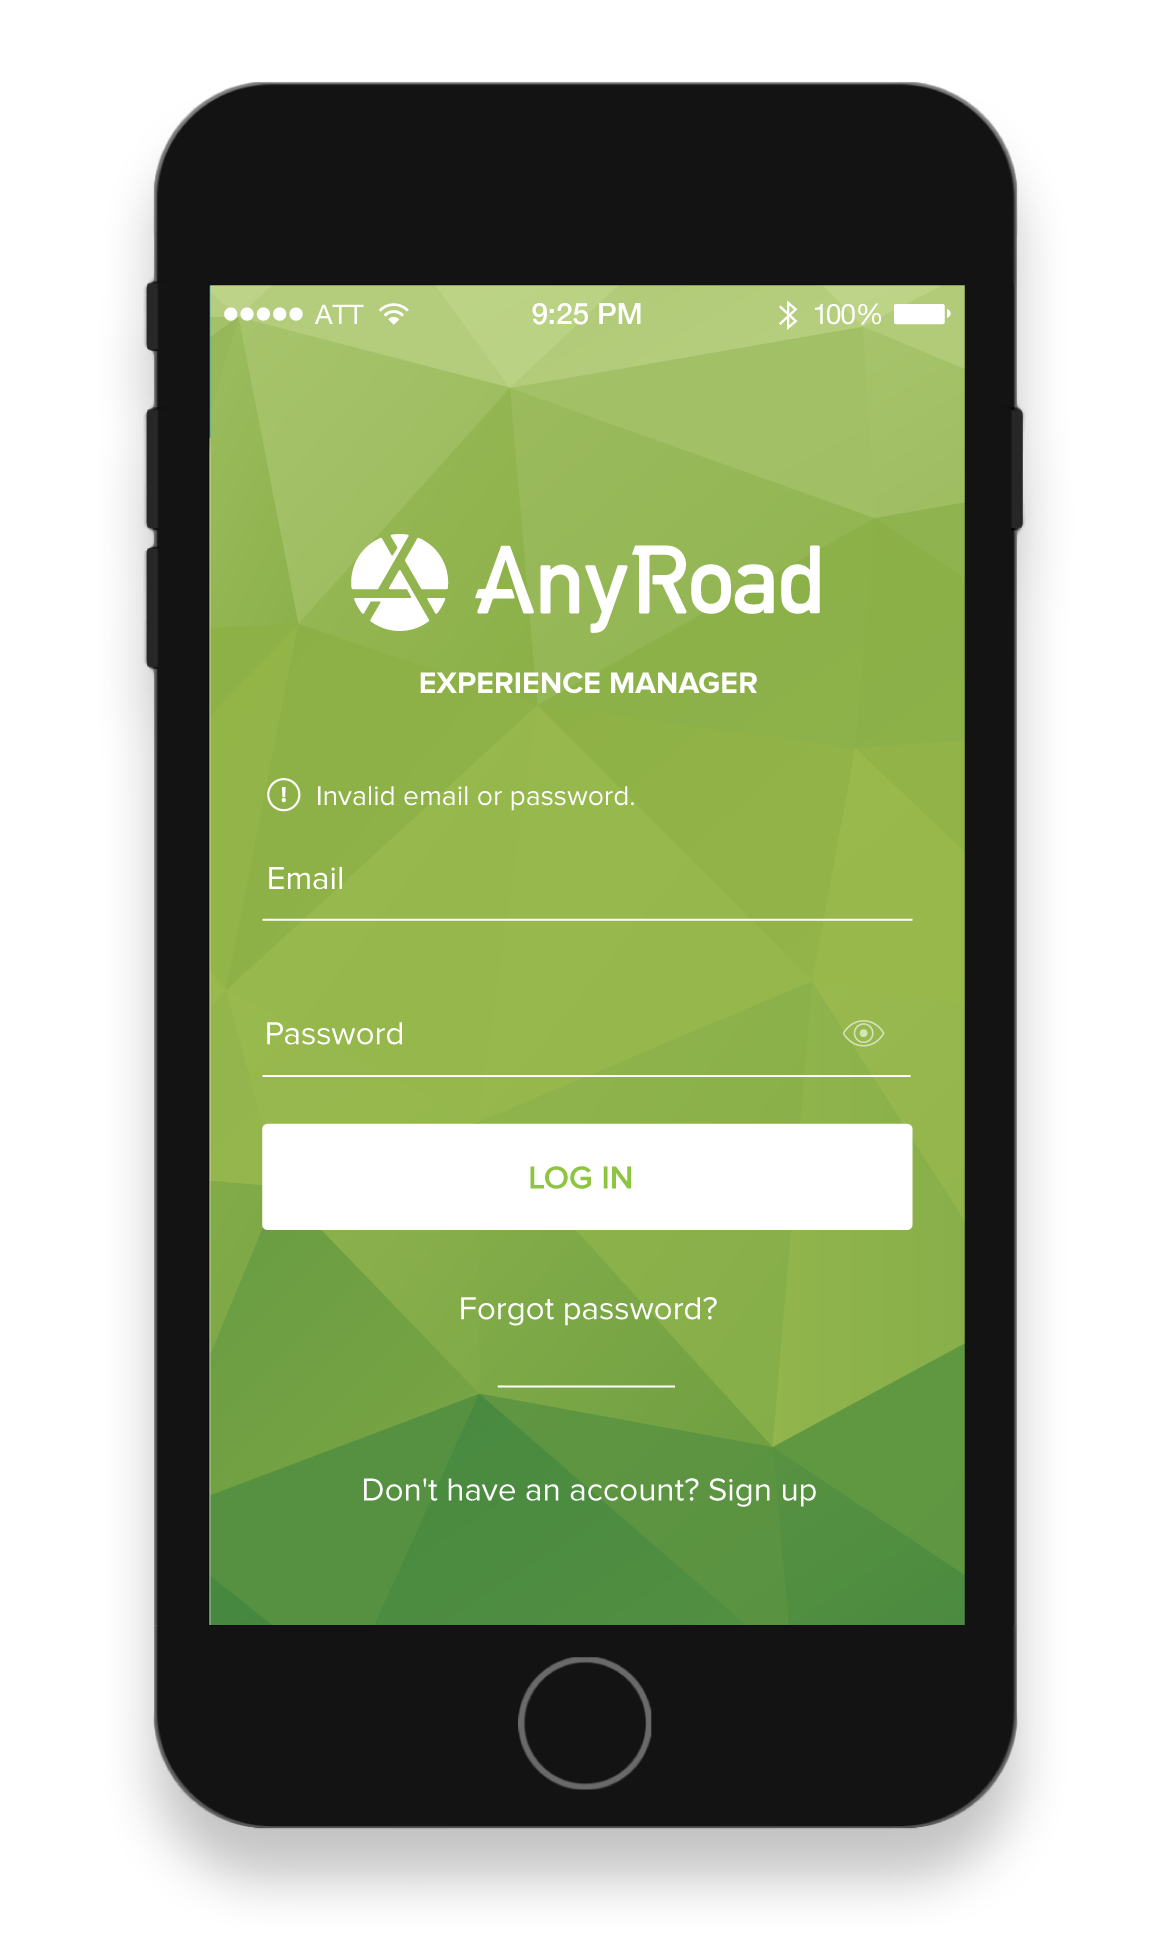 AnyRoad Front Desk for iPhone / iPad